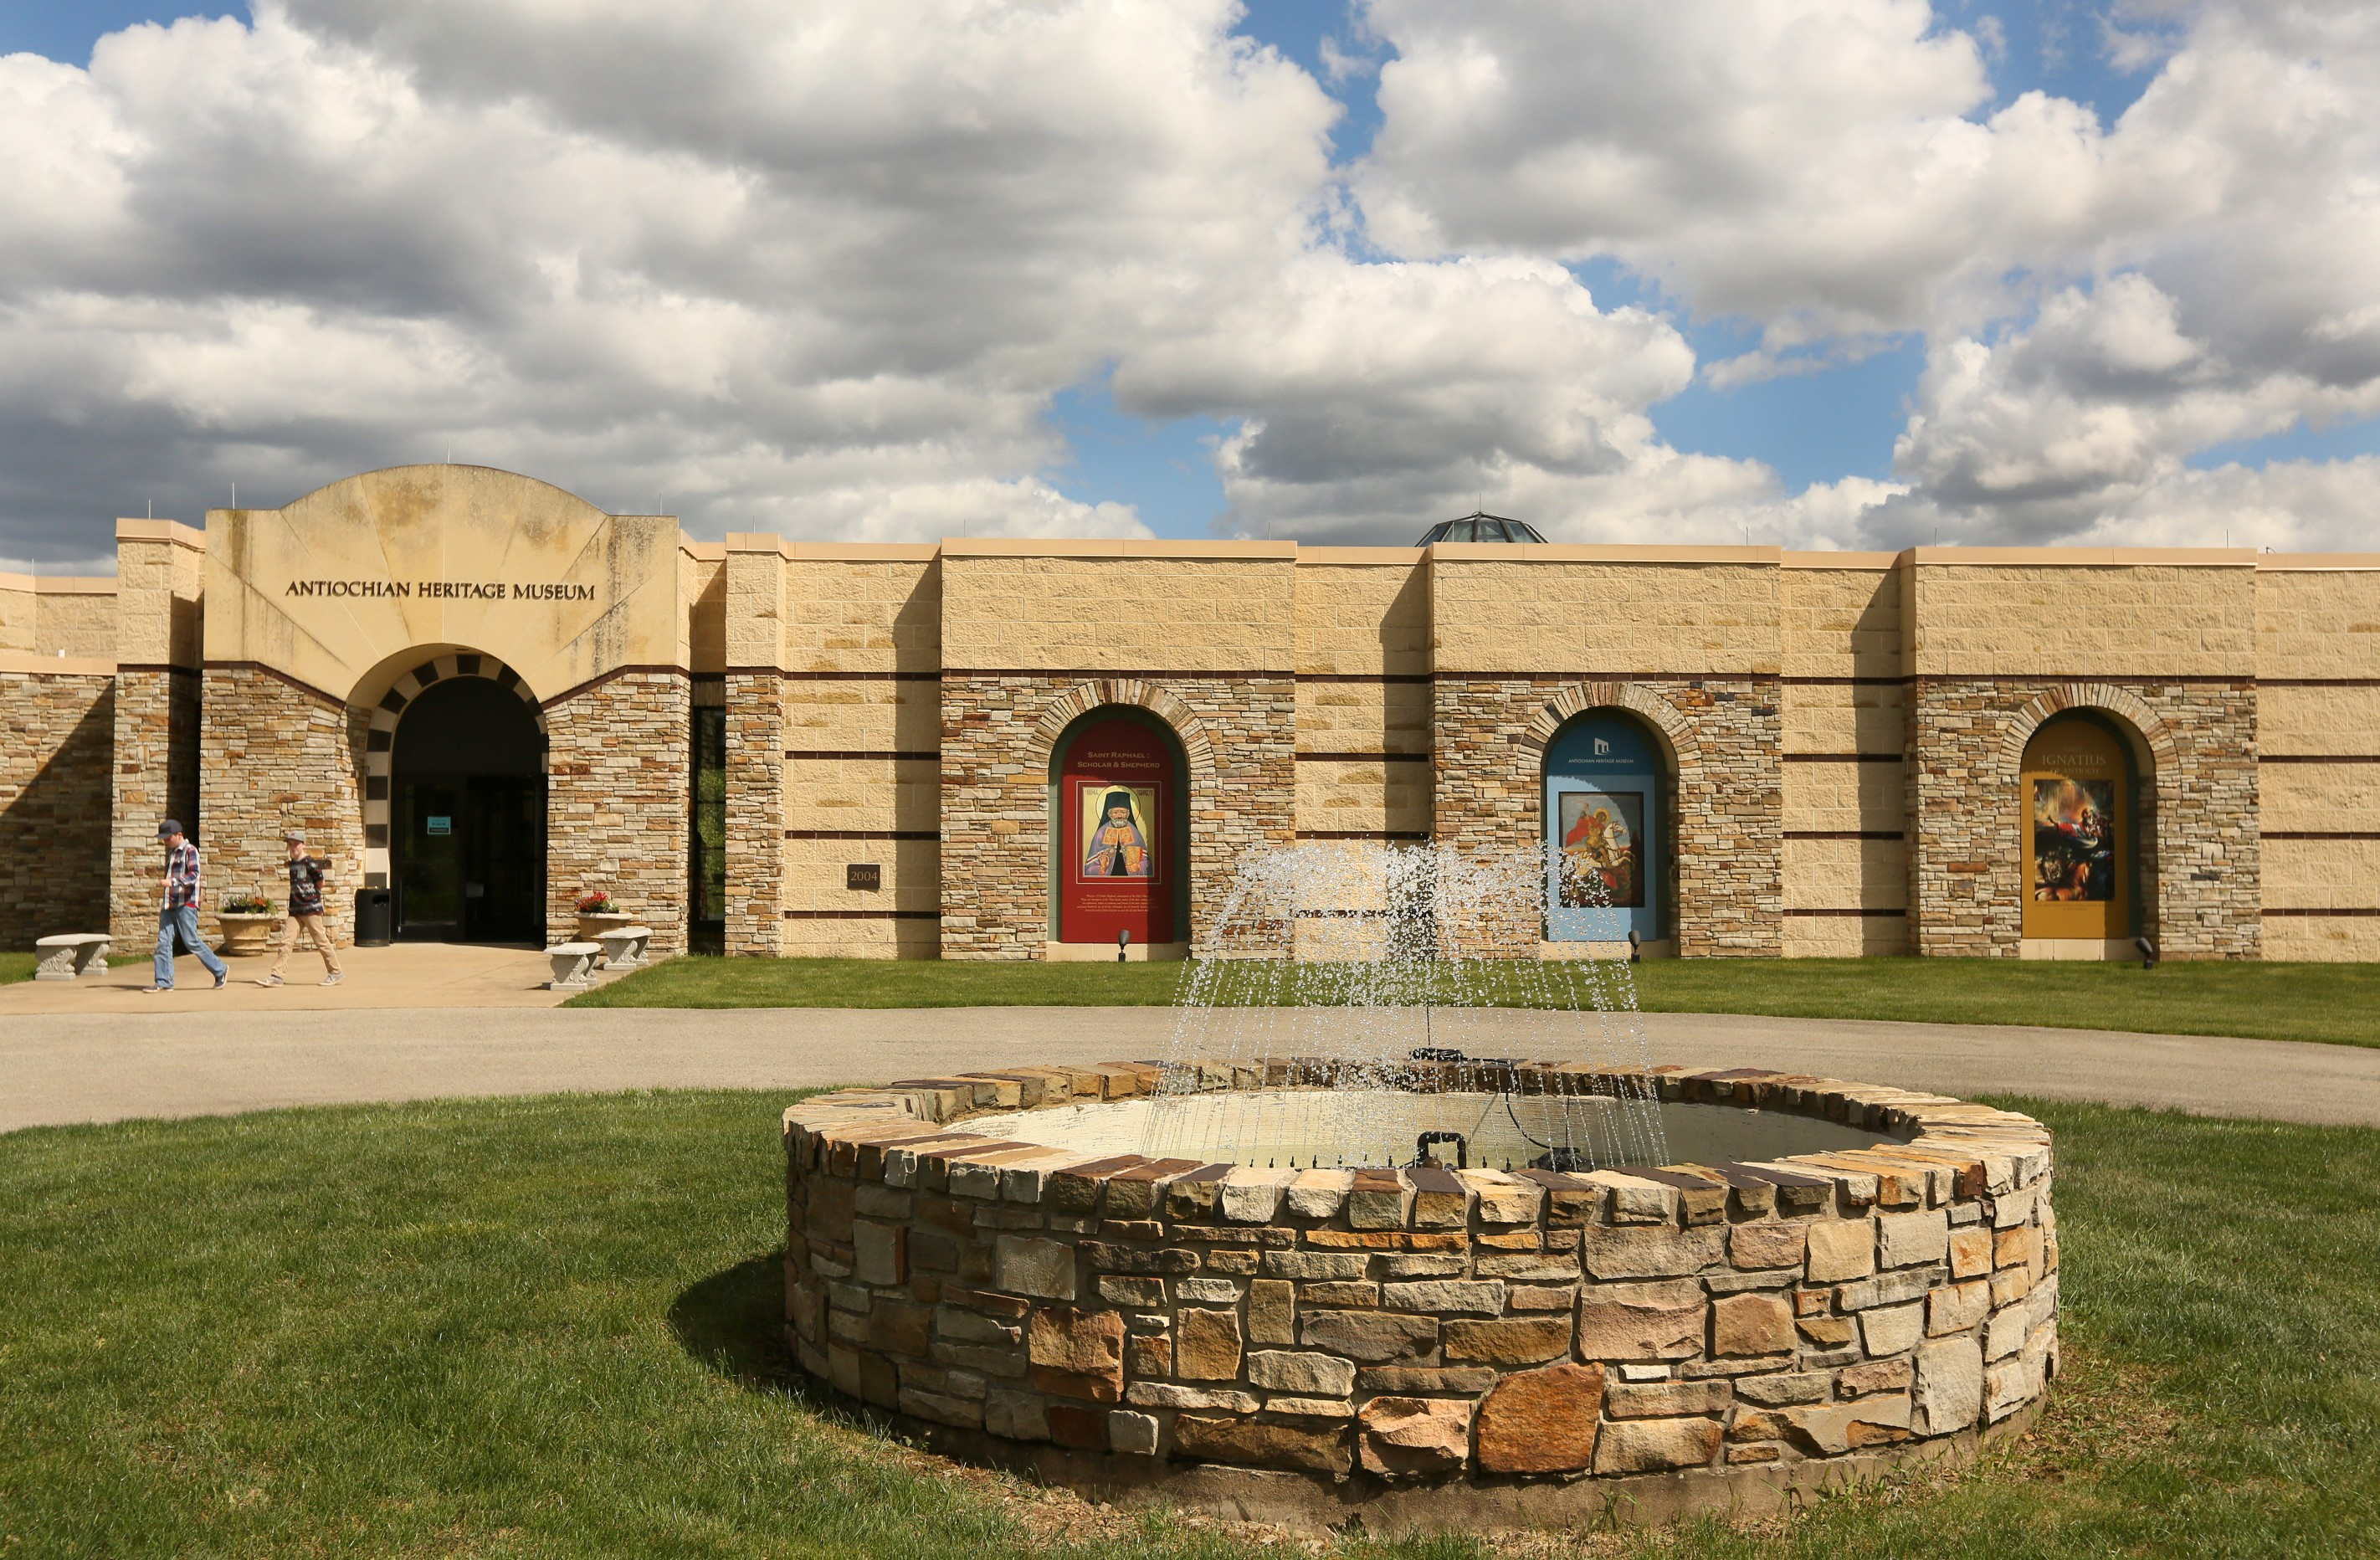 Antiochian Heritage Museum is located on the campus of Antiochian Village, a conference and retreat center, and is open to the public year-round.